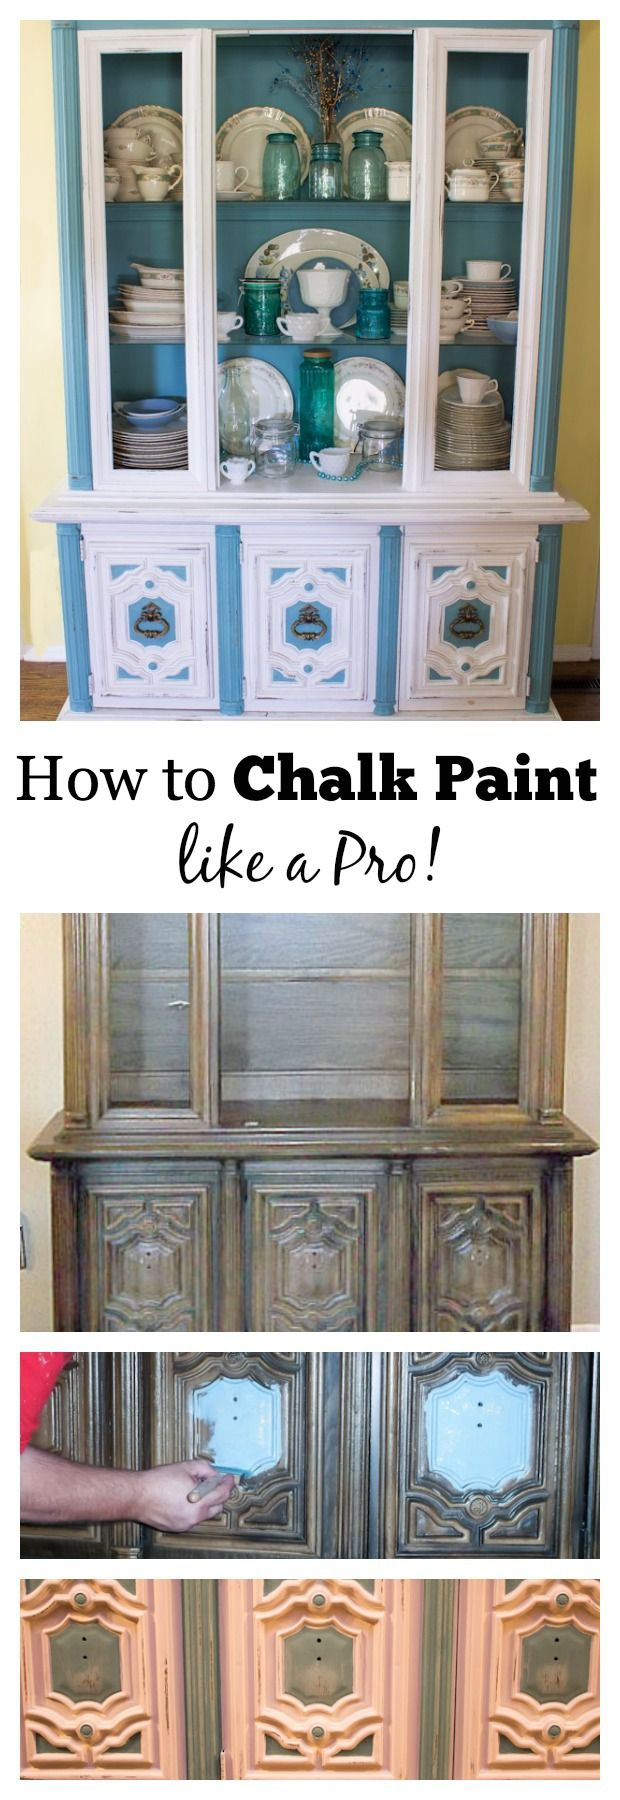 This detailed tutorial from a professional painter explains how to chalk paint furniture with tips that include brush selection, preparation and application, Marty's Musings shows how to turn an outdated piece of furniture into a beauty!